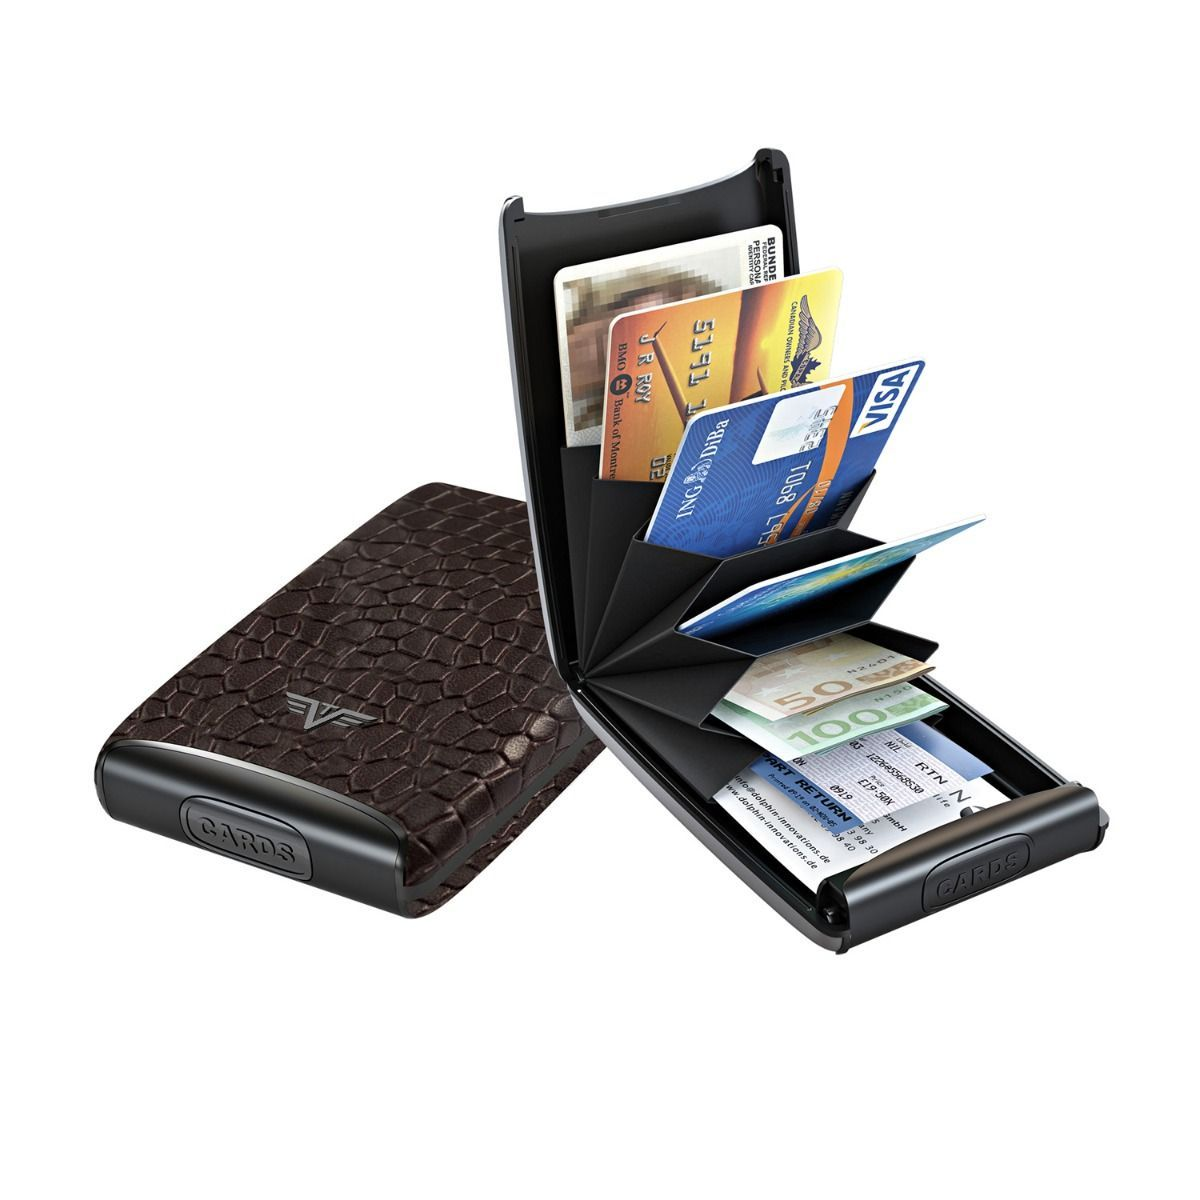 TRU VIRTU Aluminum Card Case Fun Leather Line - Corco Brown